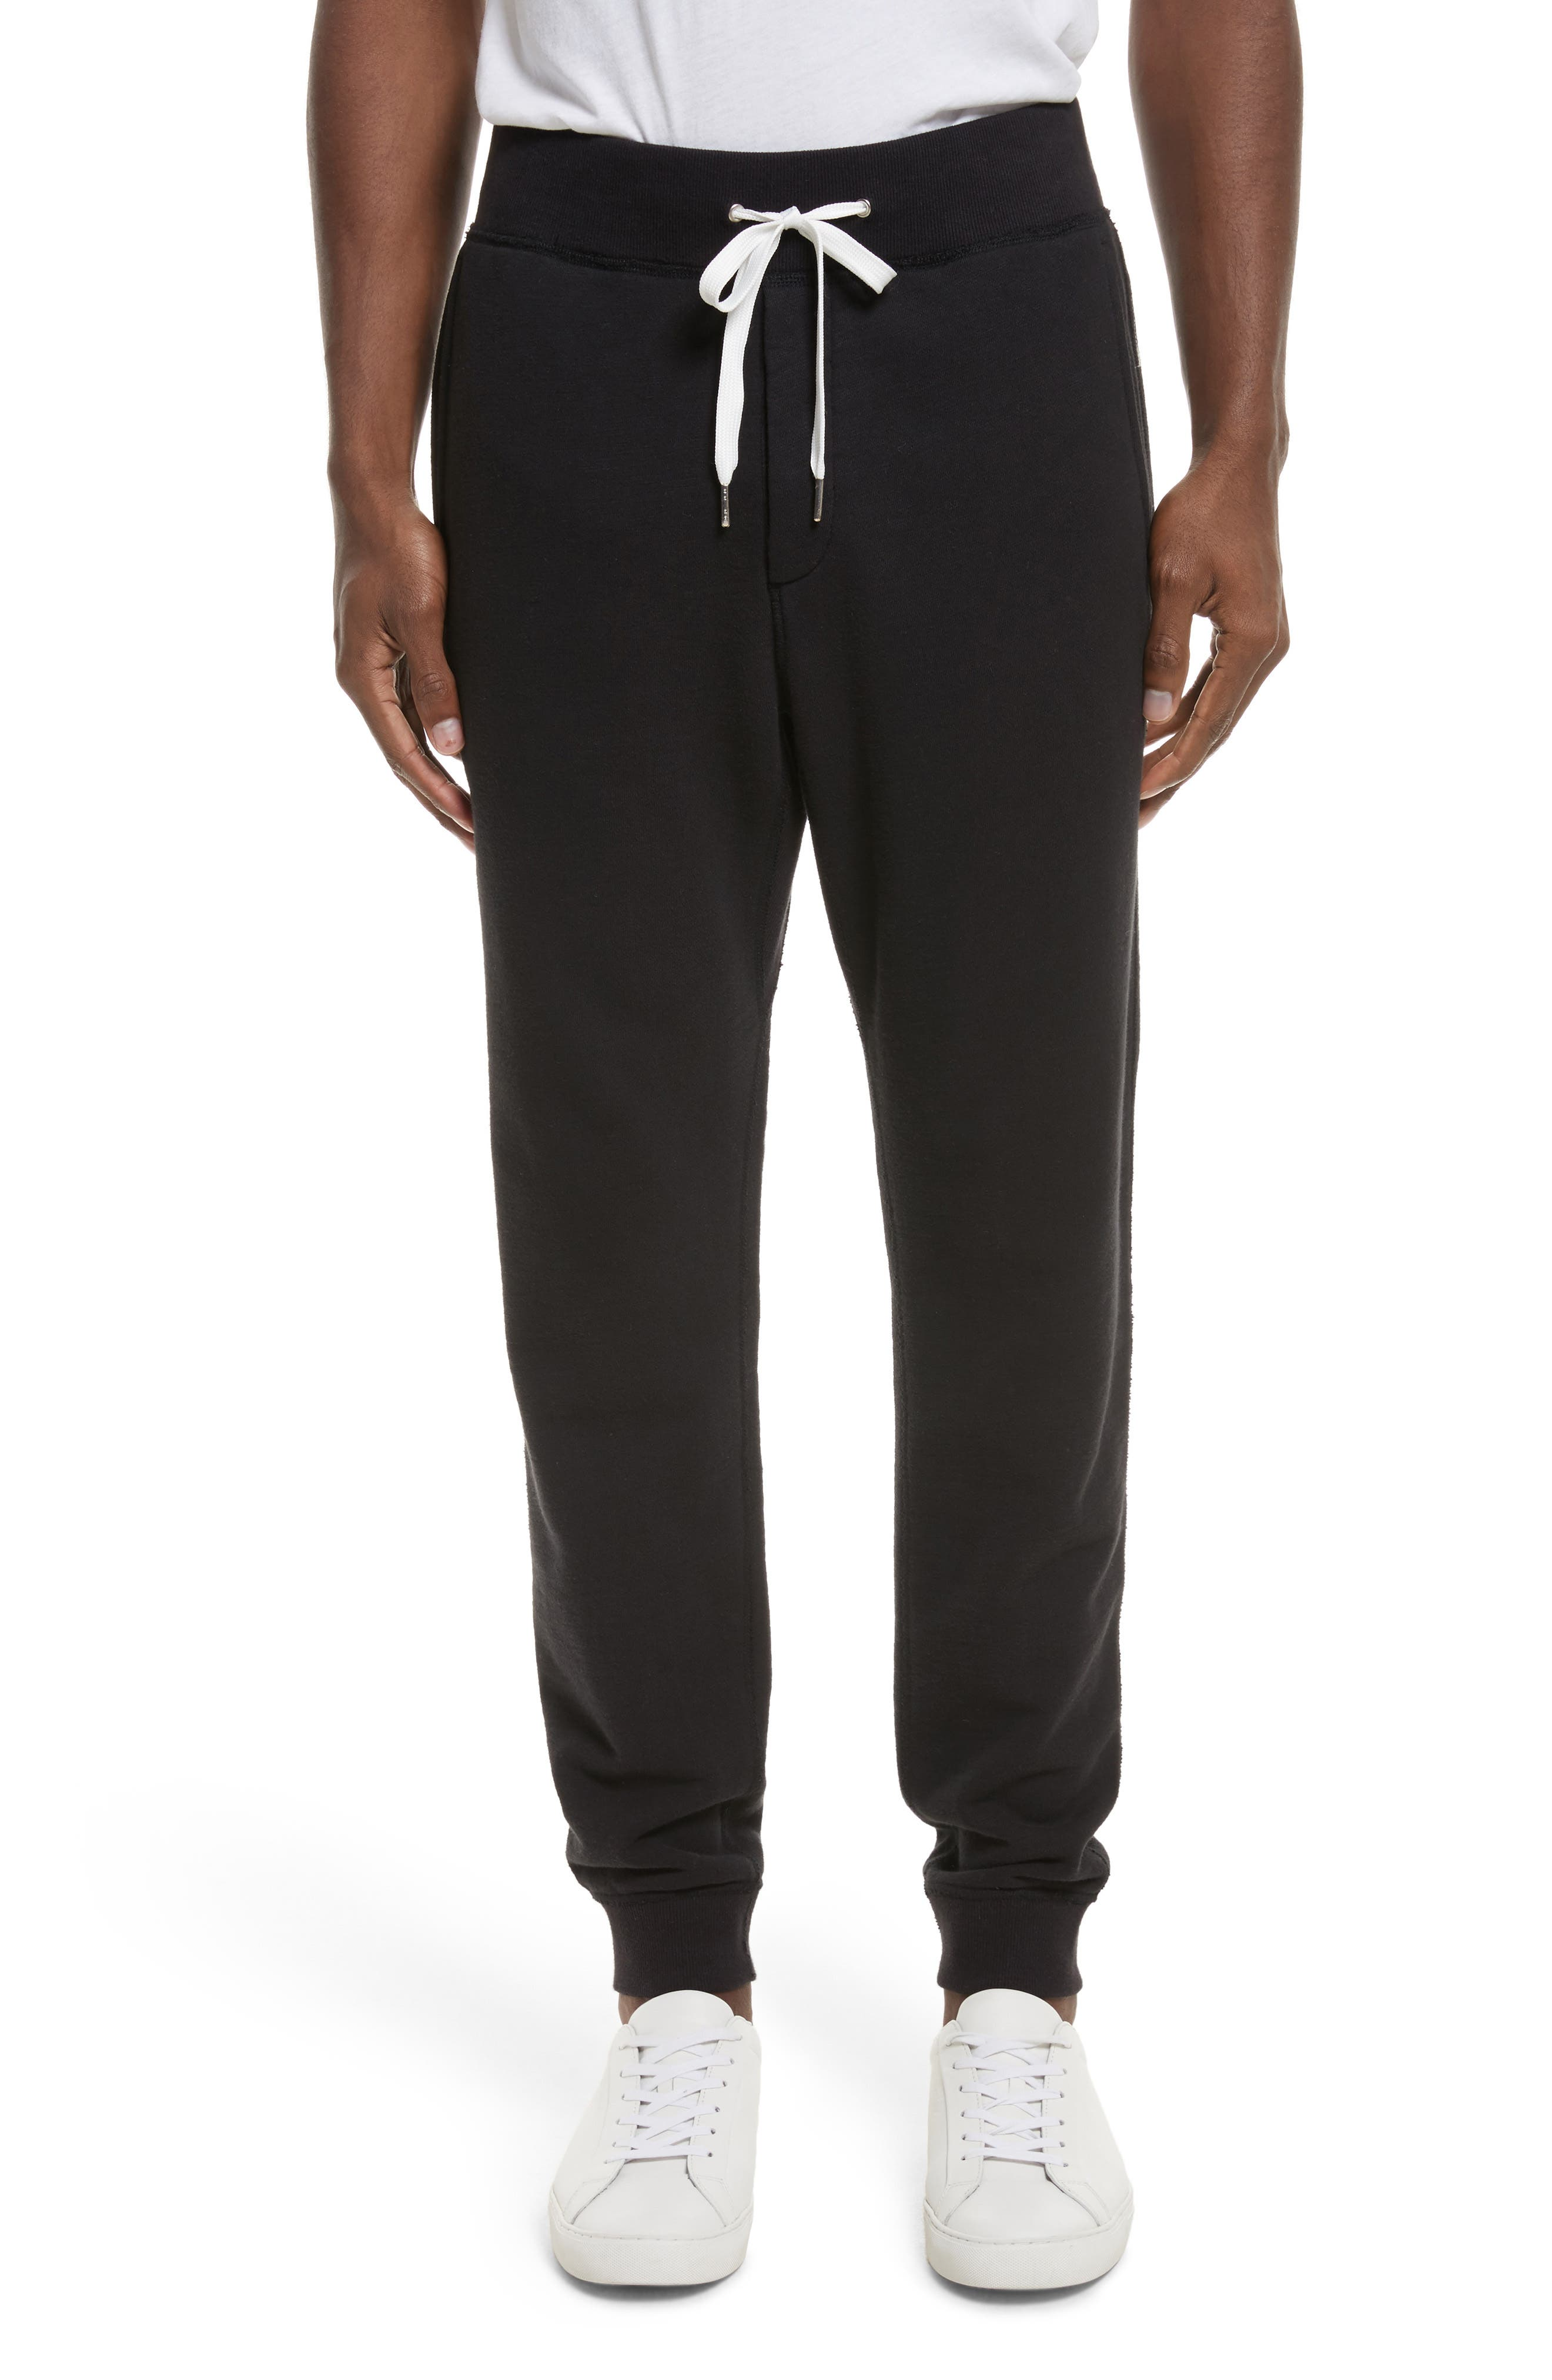 Standard Issue Sweatpants,                         Main,                         color, Black